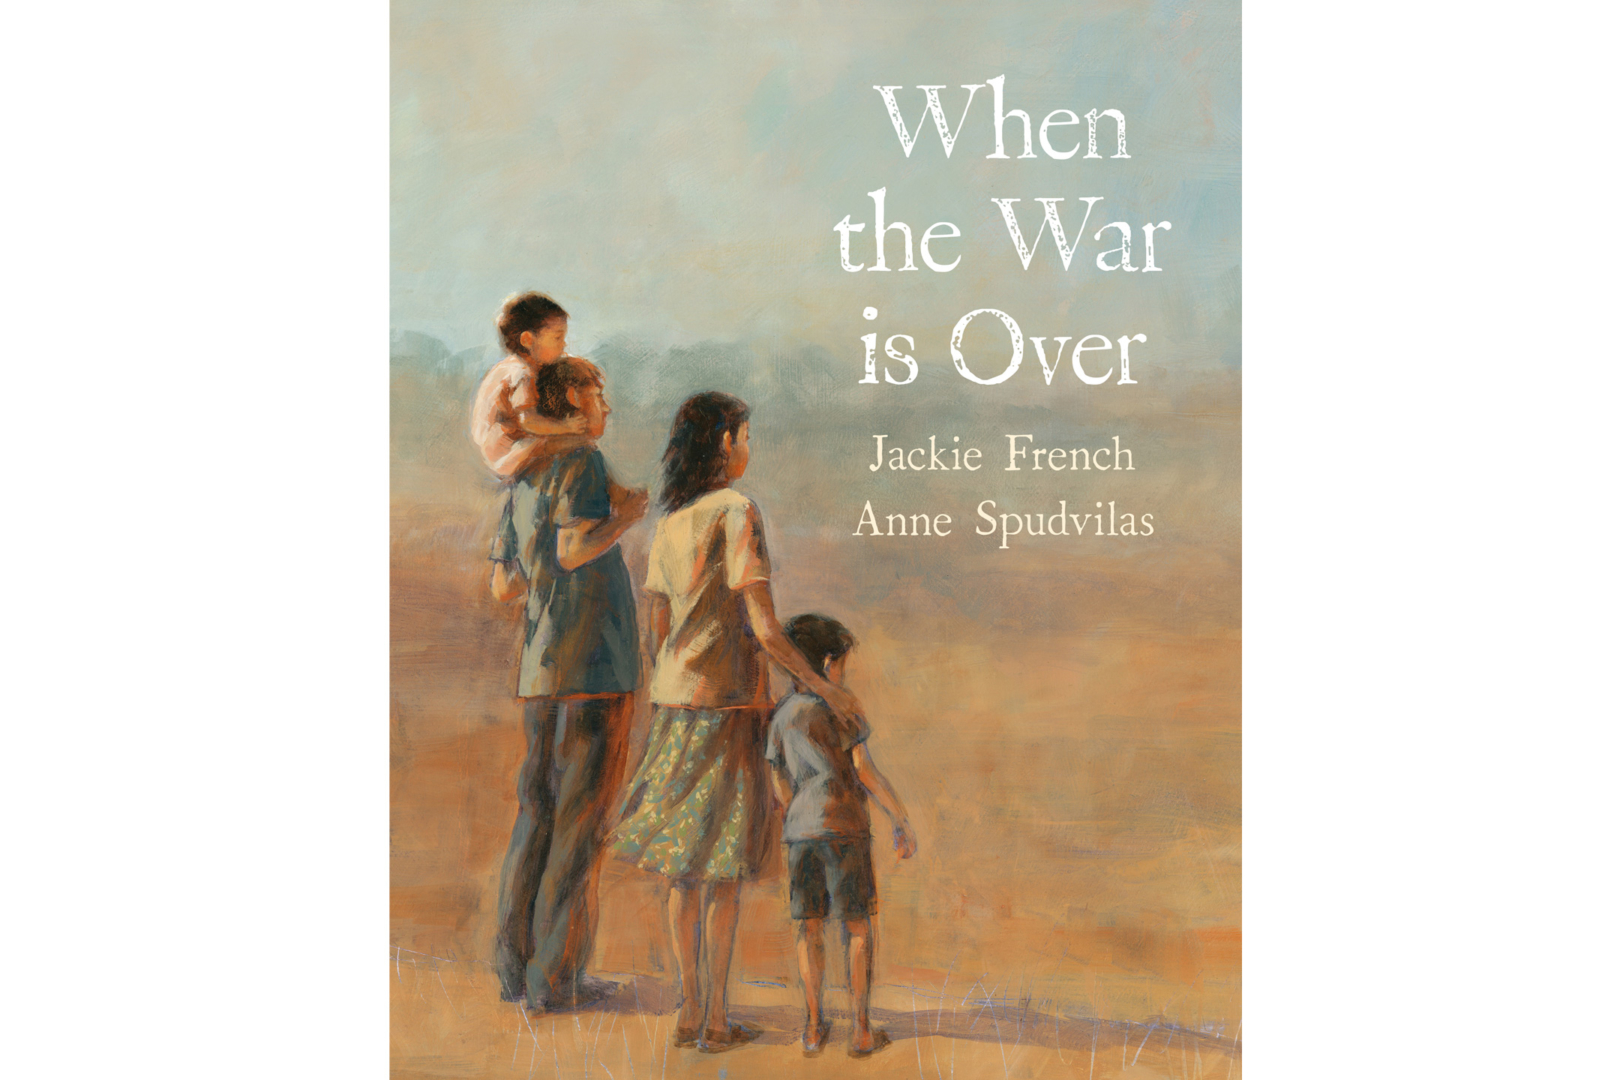 JackieFrench-When-the-war-is-over